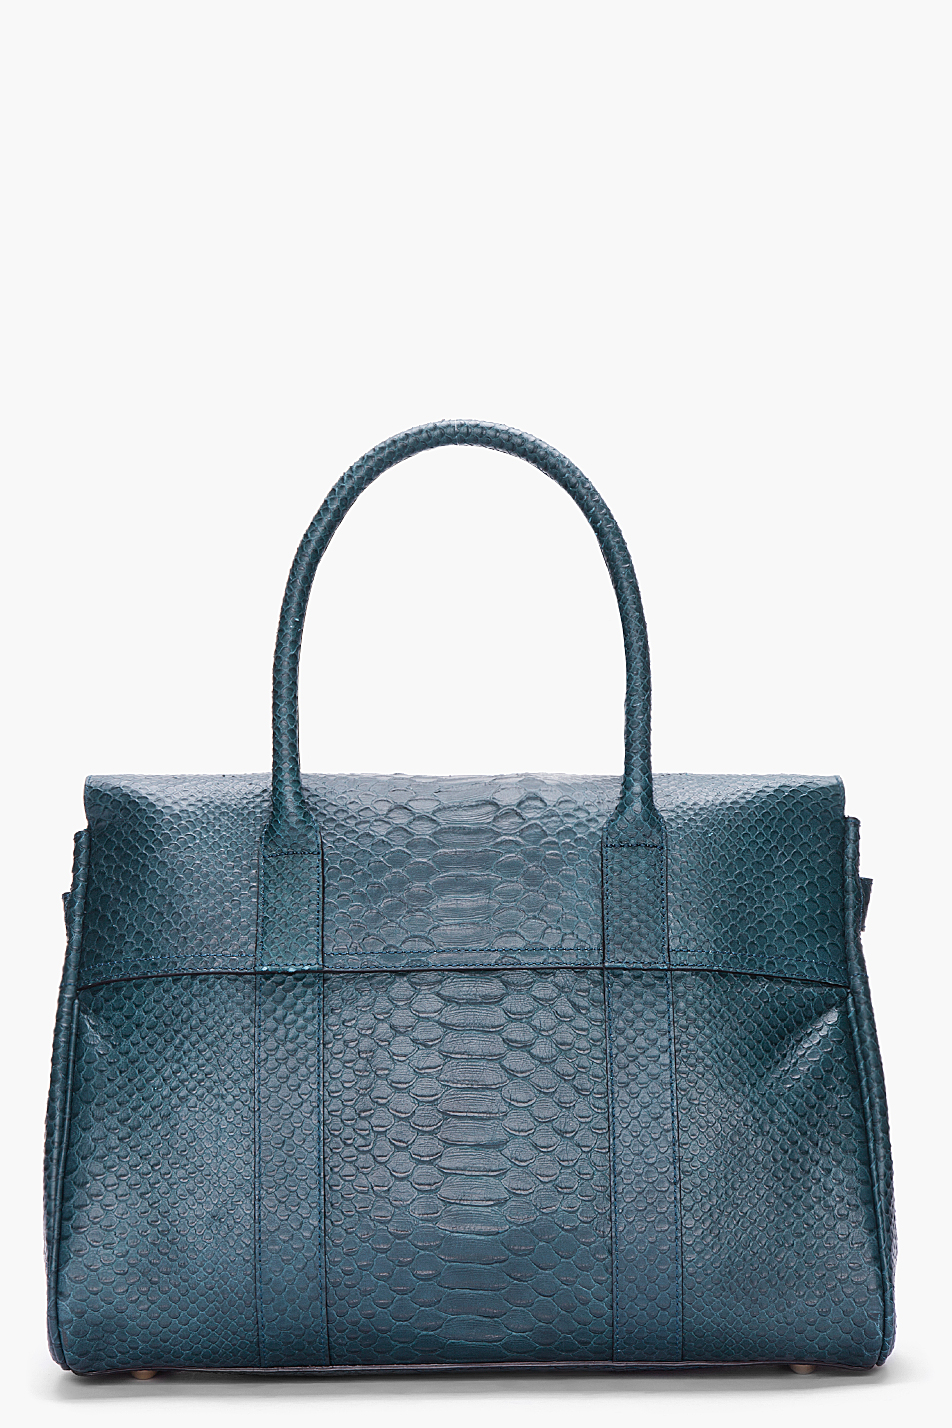 ... best lyst mulberry bayswater silky snake print tote in blue 93838 8d5fa 5ea708574c1f6